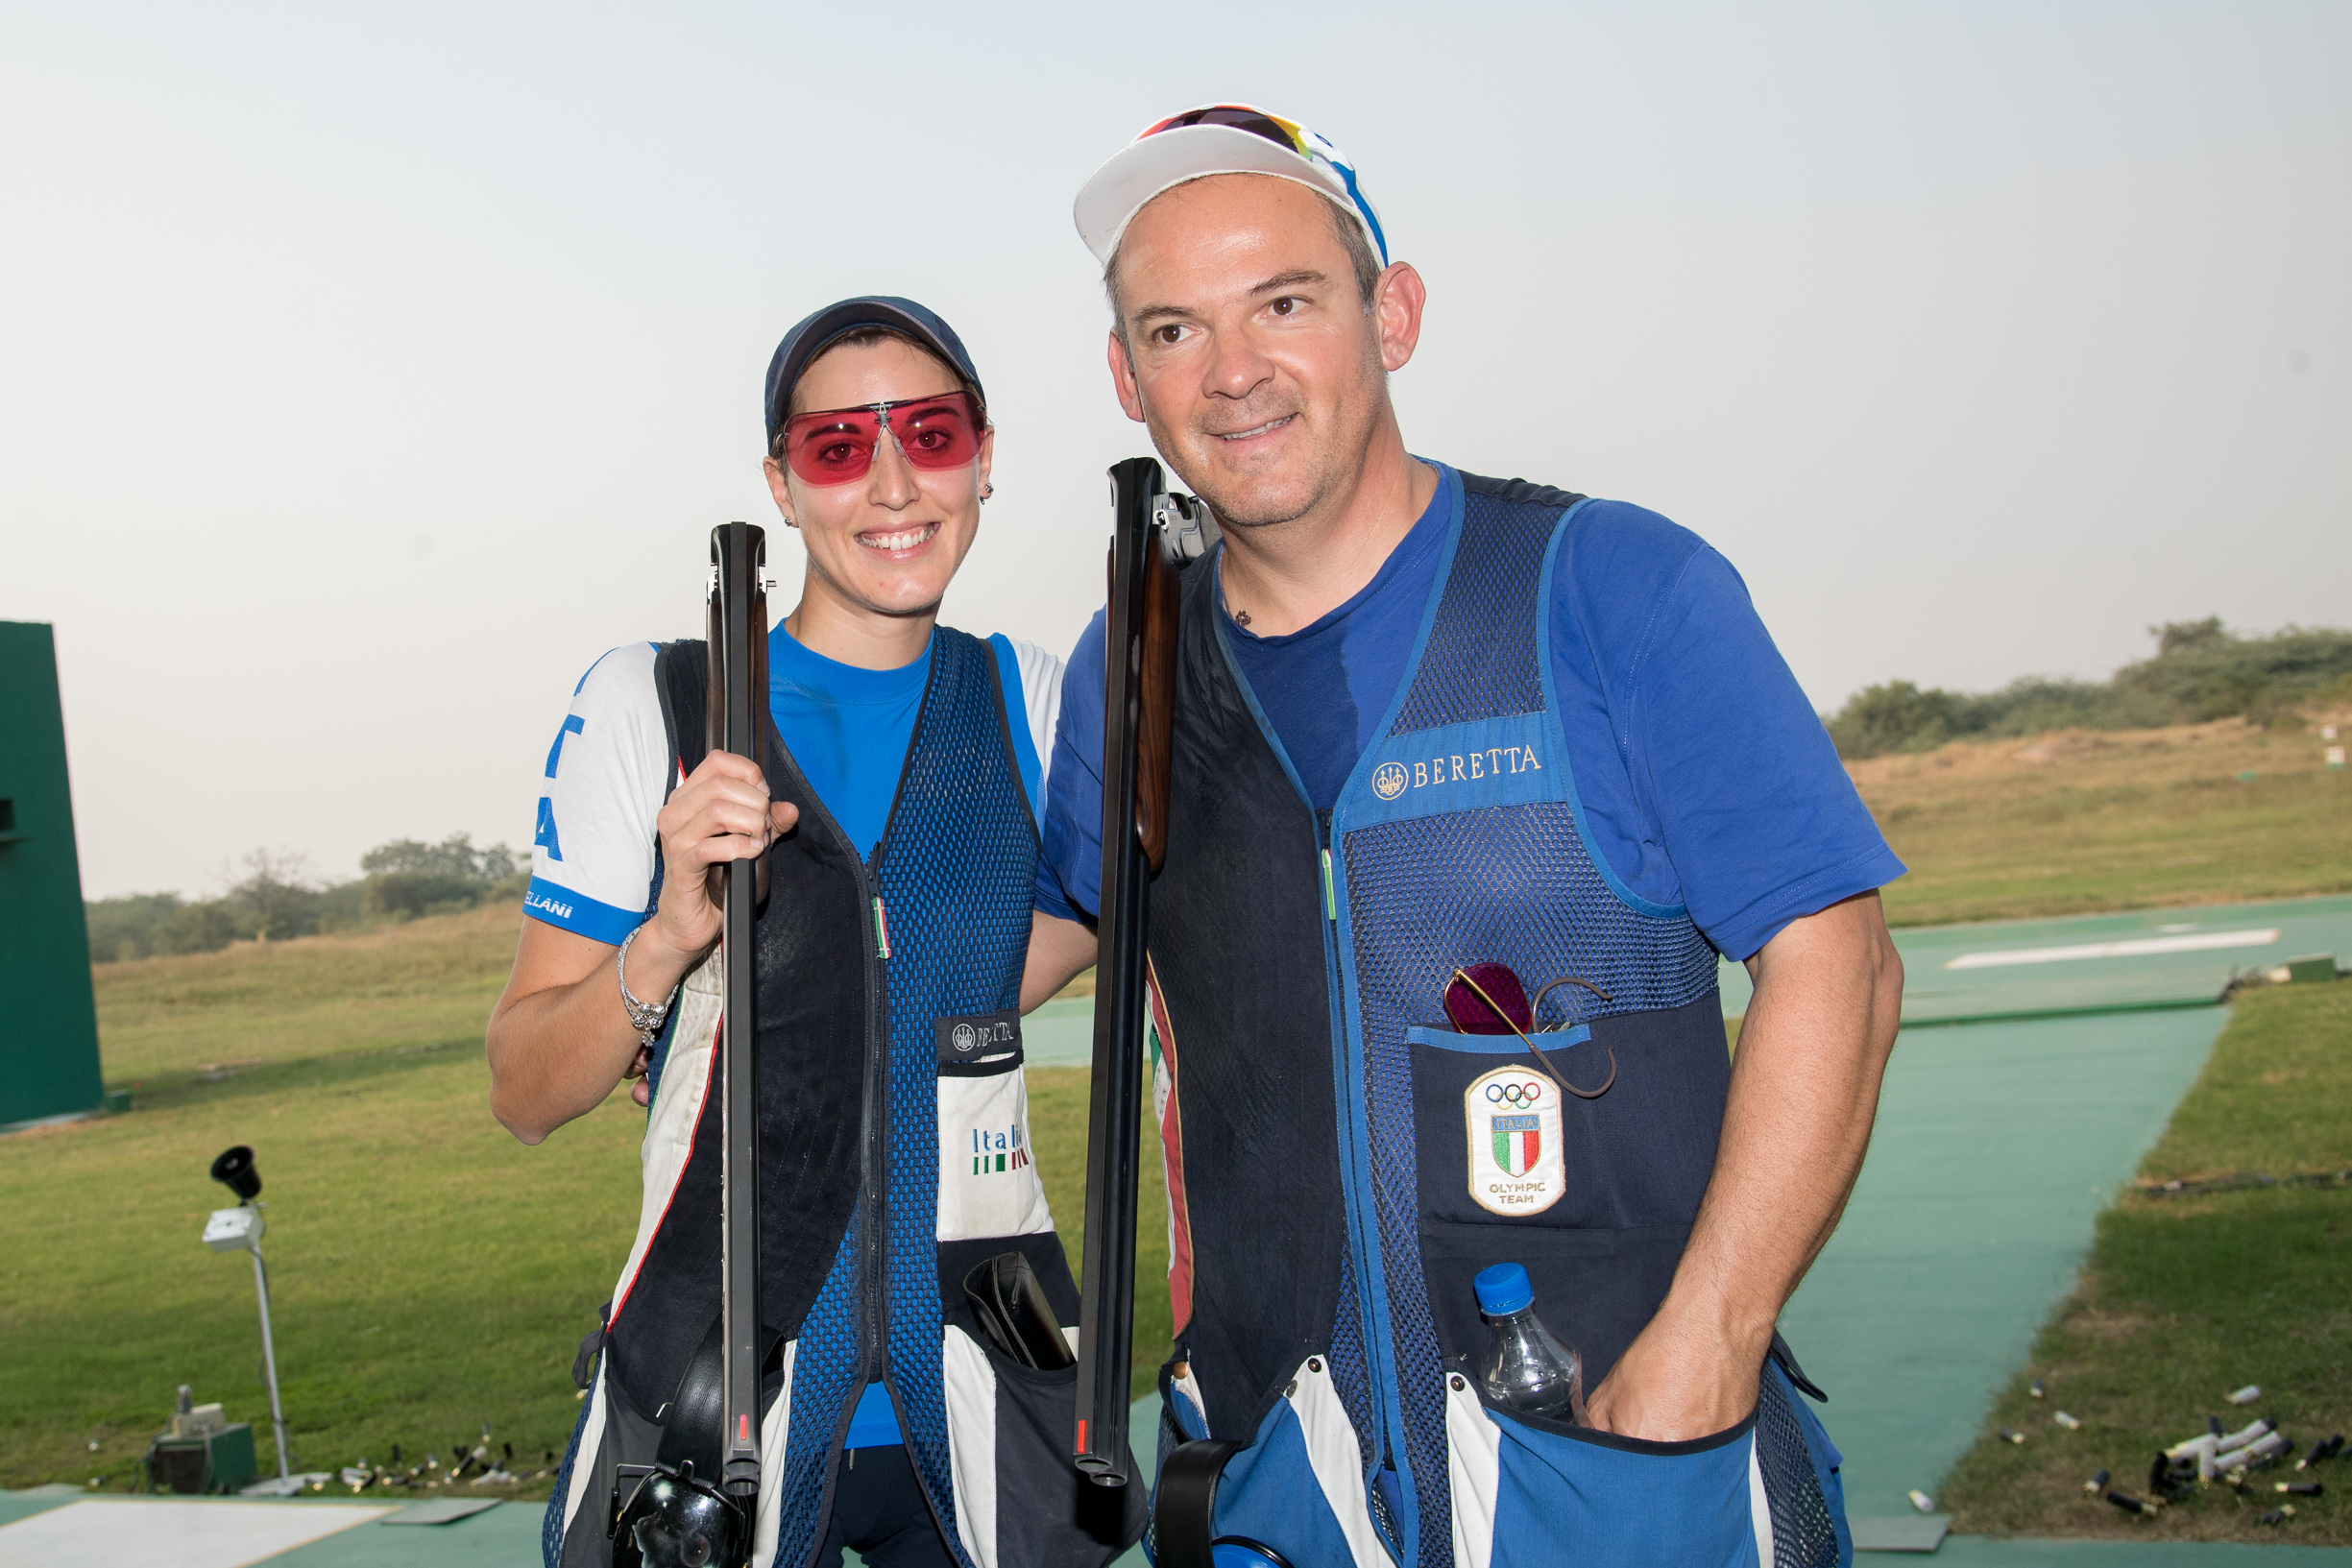 THE ISSF WORLD CUP IS ABOUT TO START: FIOCCHI TEAM FLIES TO GUADALAJARA